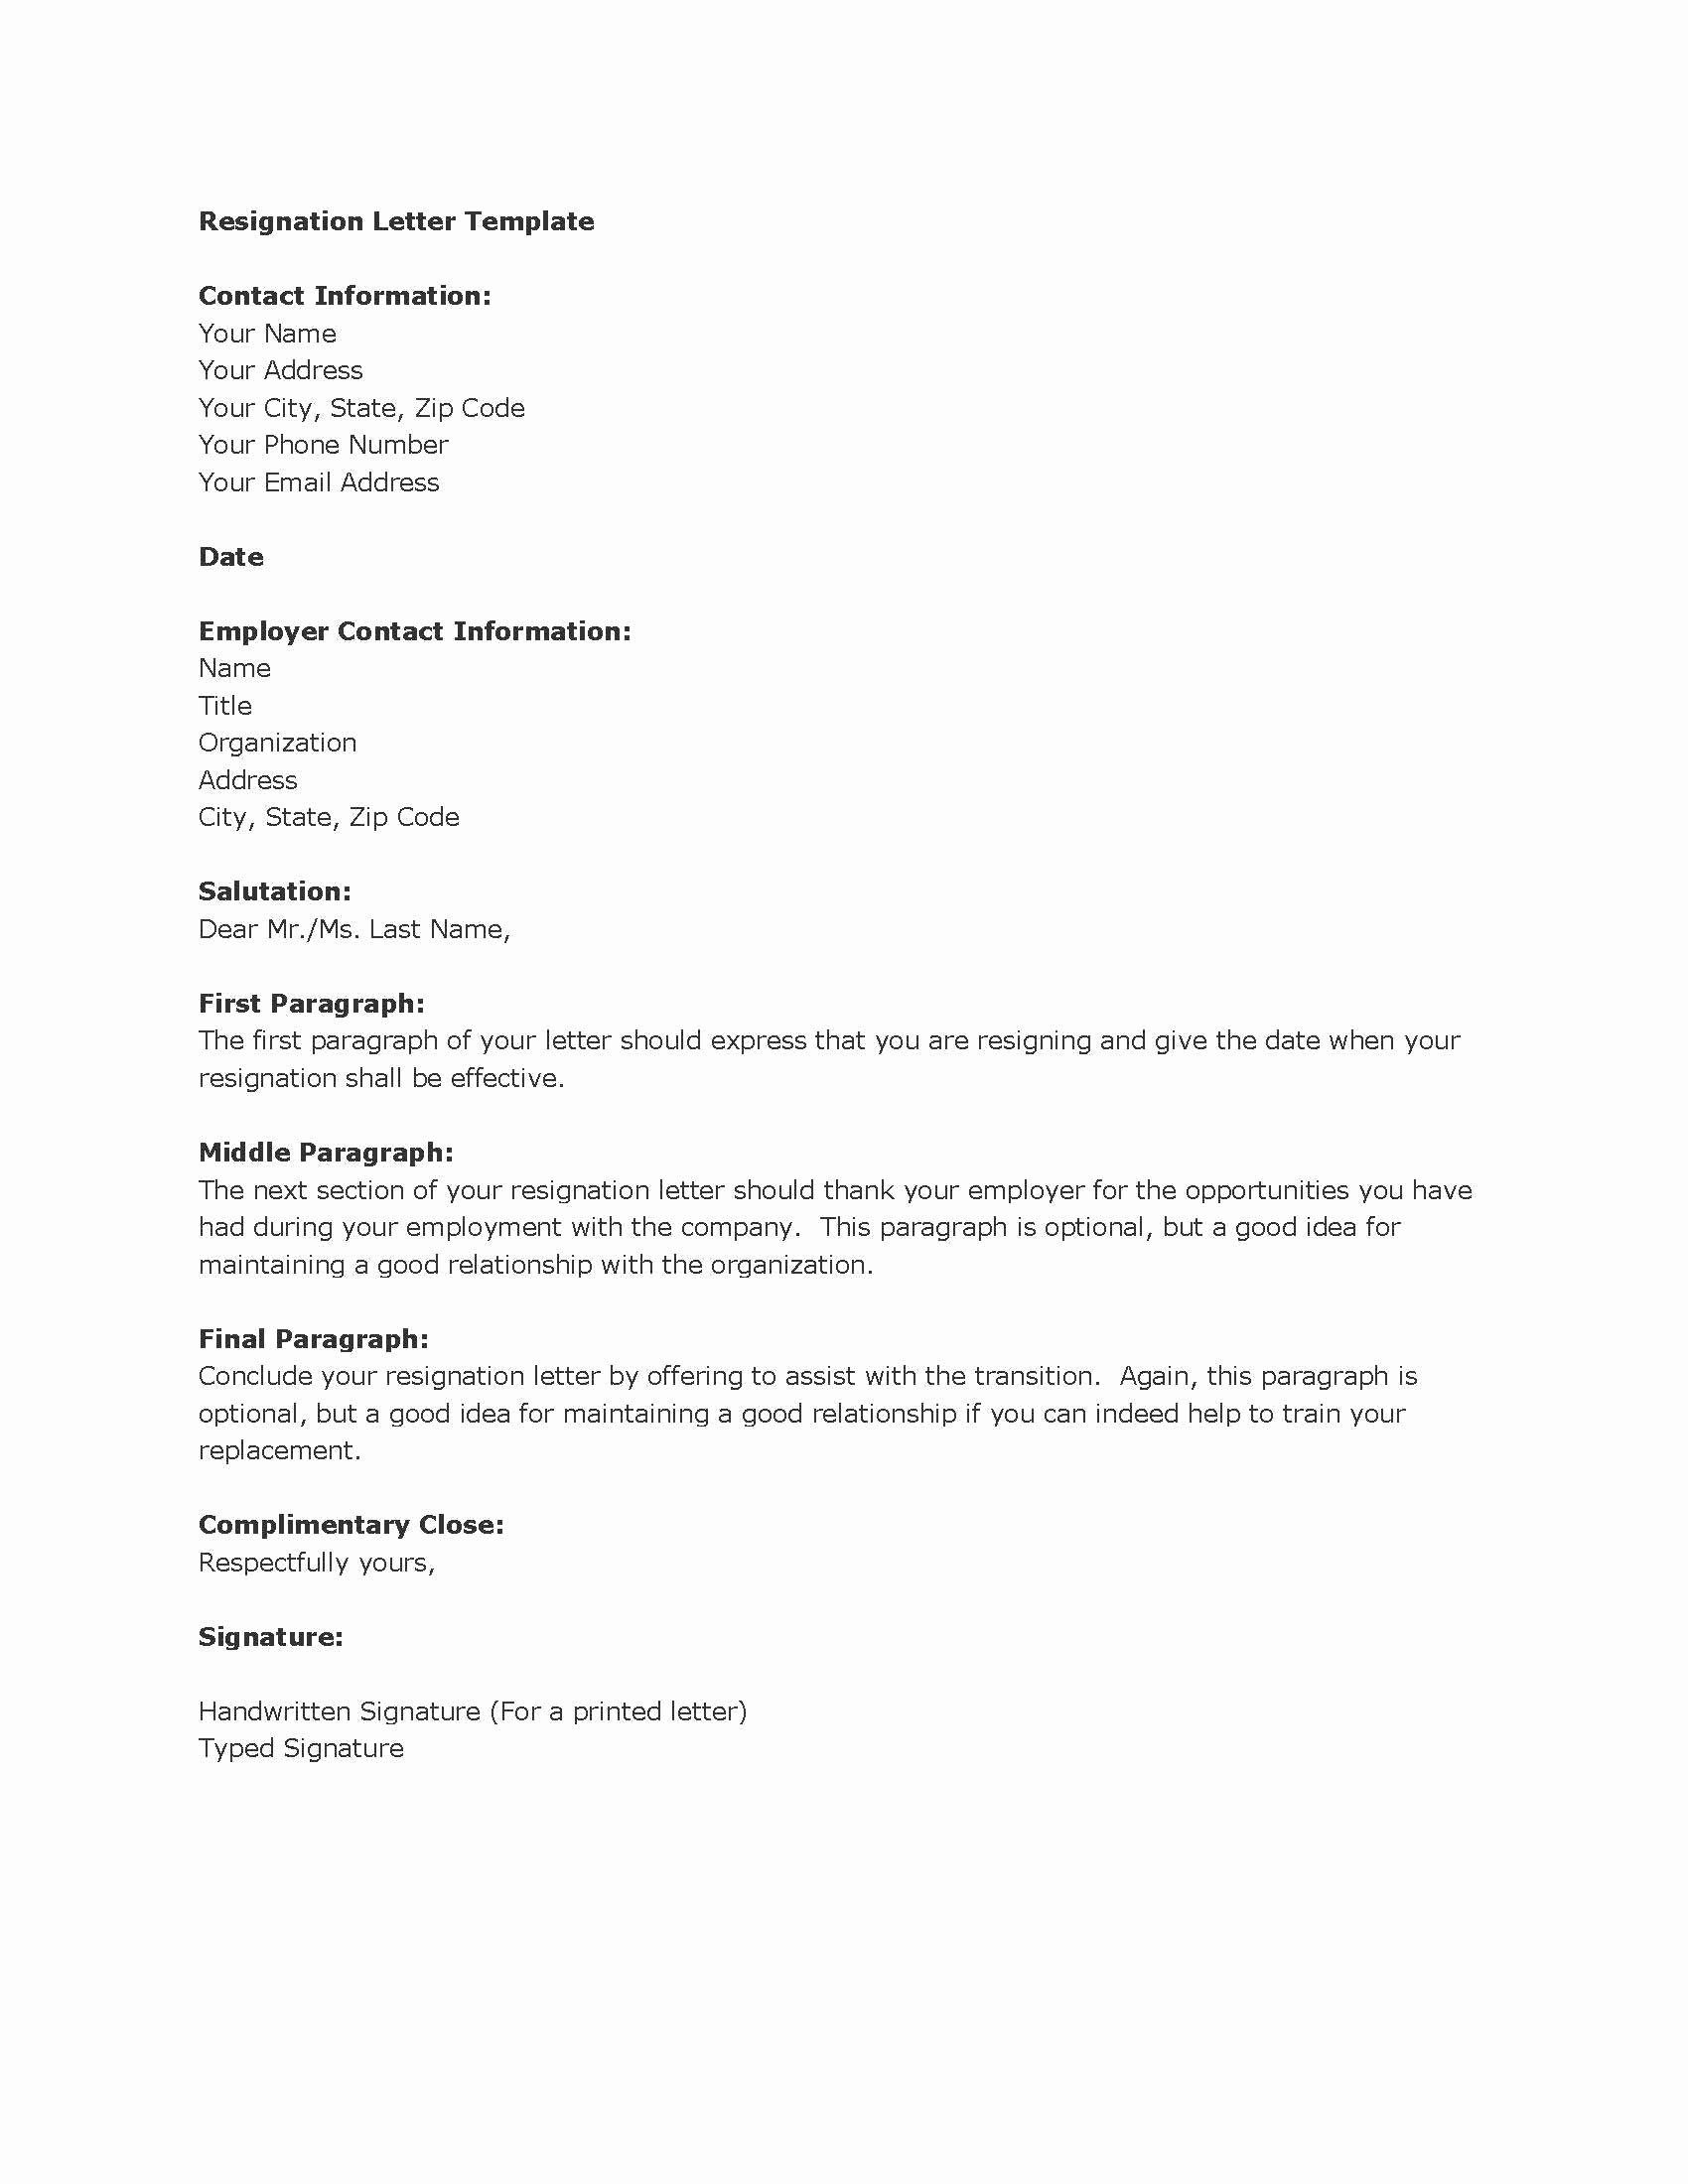 40 Resignation Letter Template Free Letter templates